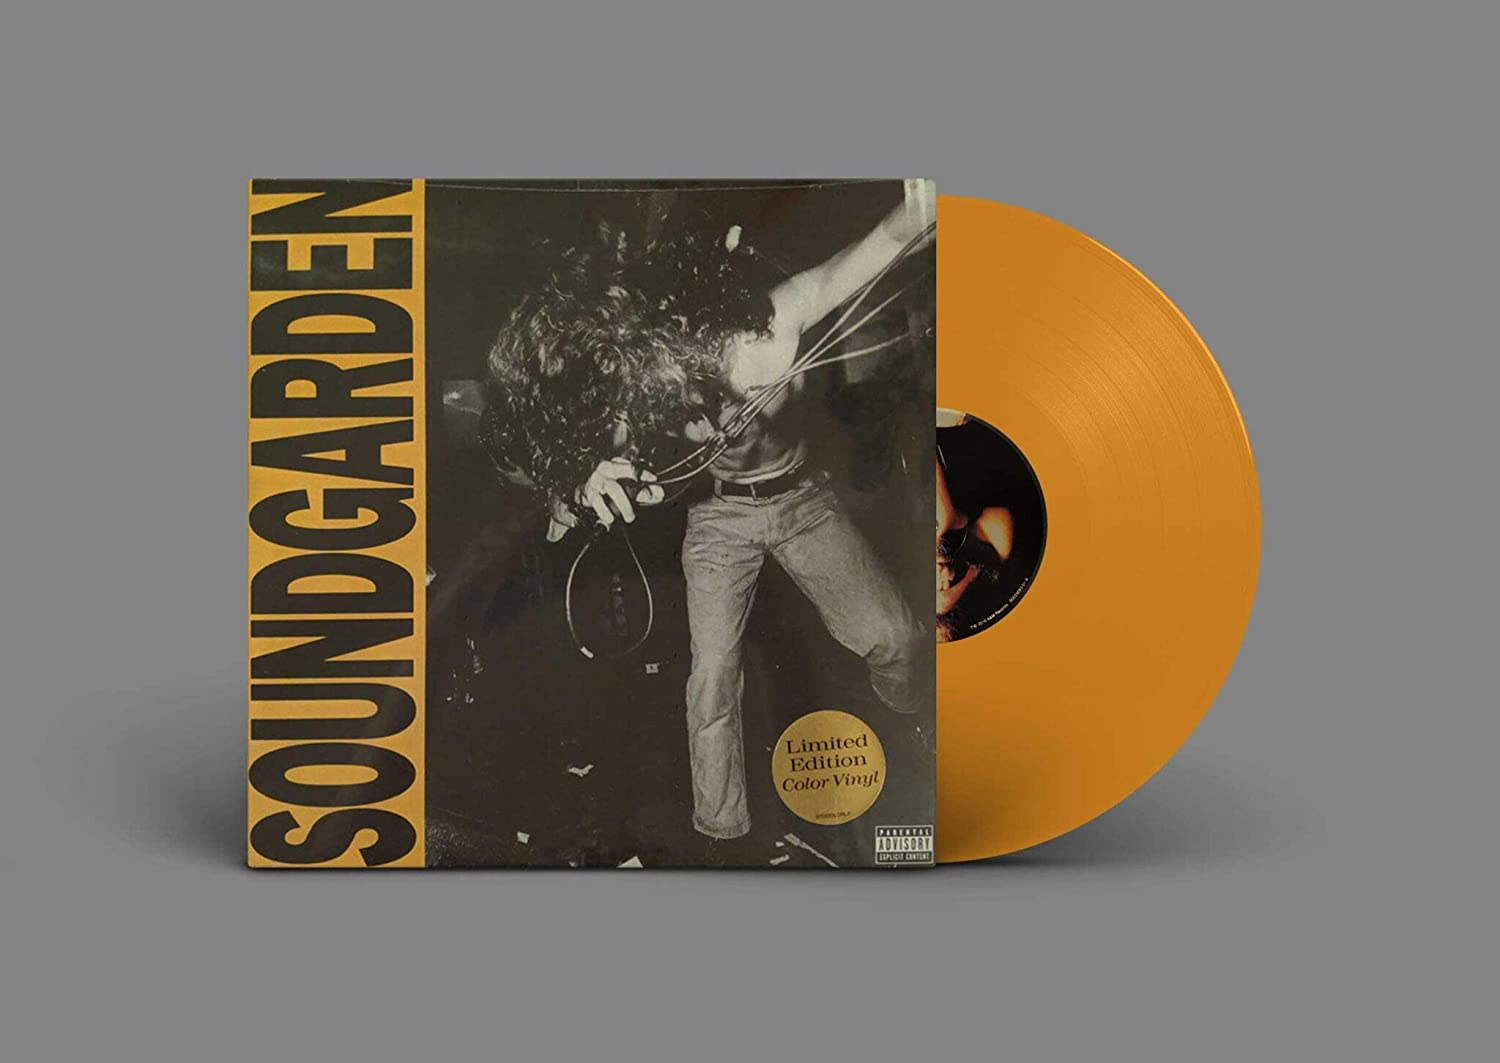 Louder than Love - Exclusive Limited Edition Yellow Translucent Colored Vinyl LP